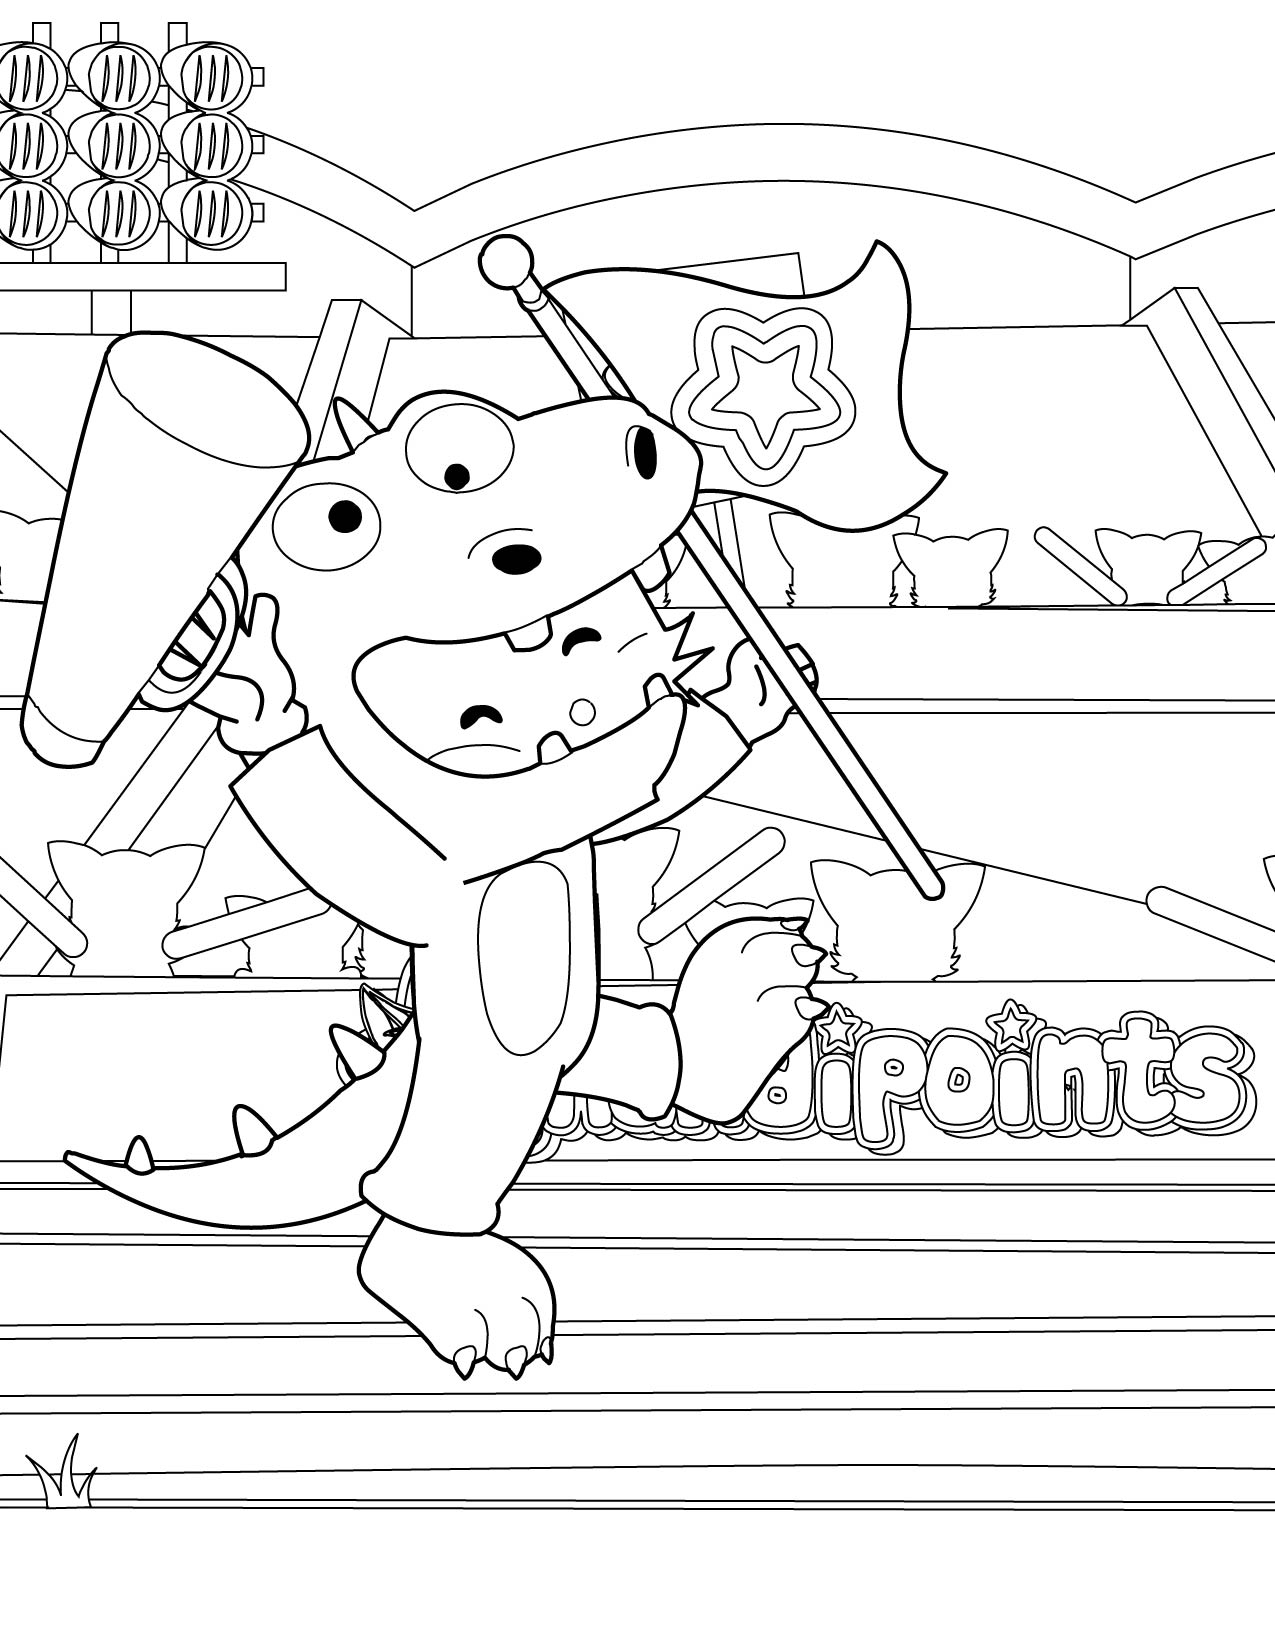 seattle seahawks color pages seattle seahawks mascot coloring page coloring pages pages color seahawks seattle